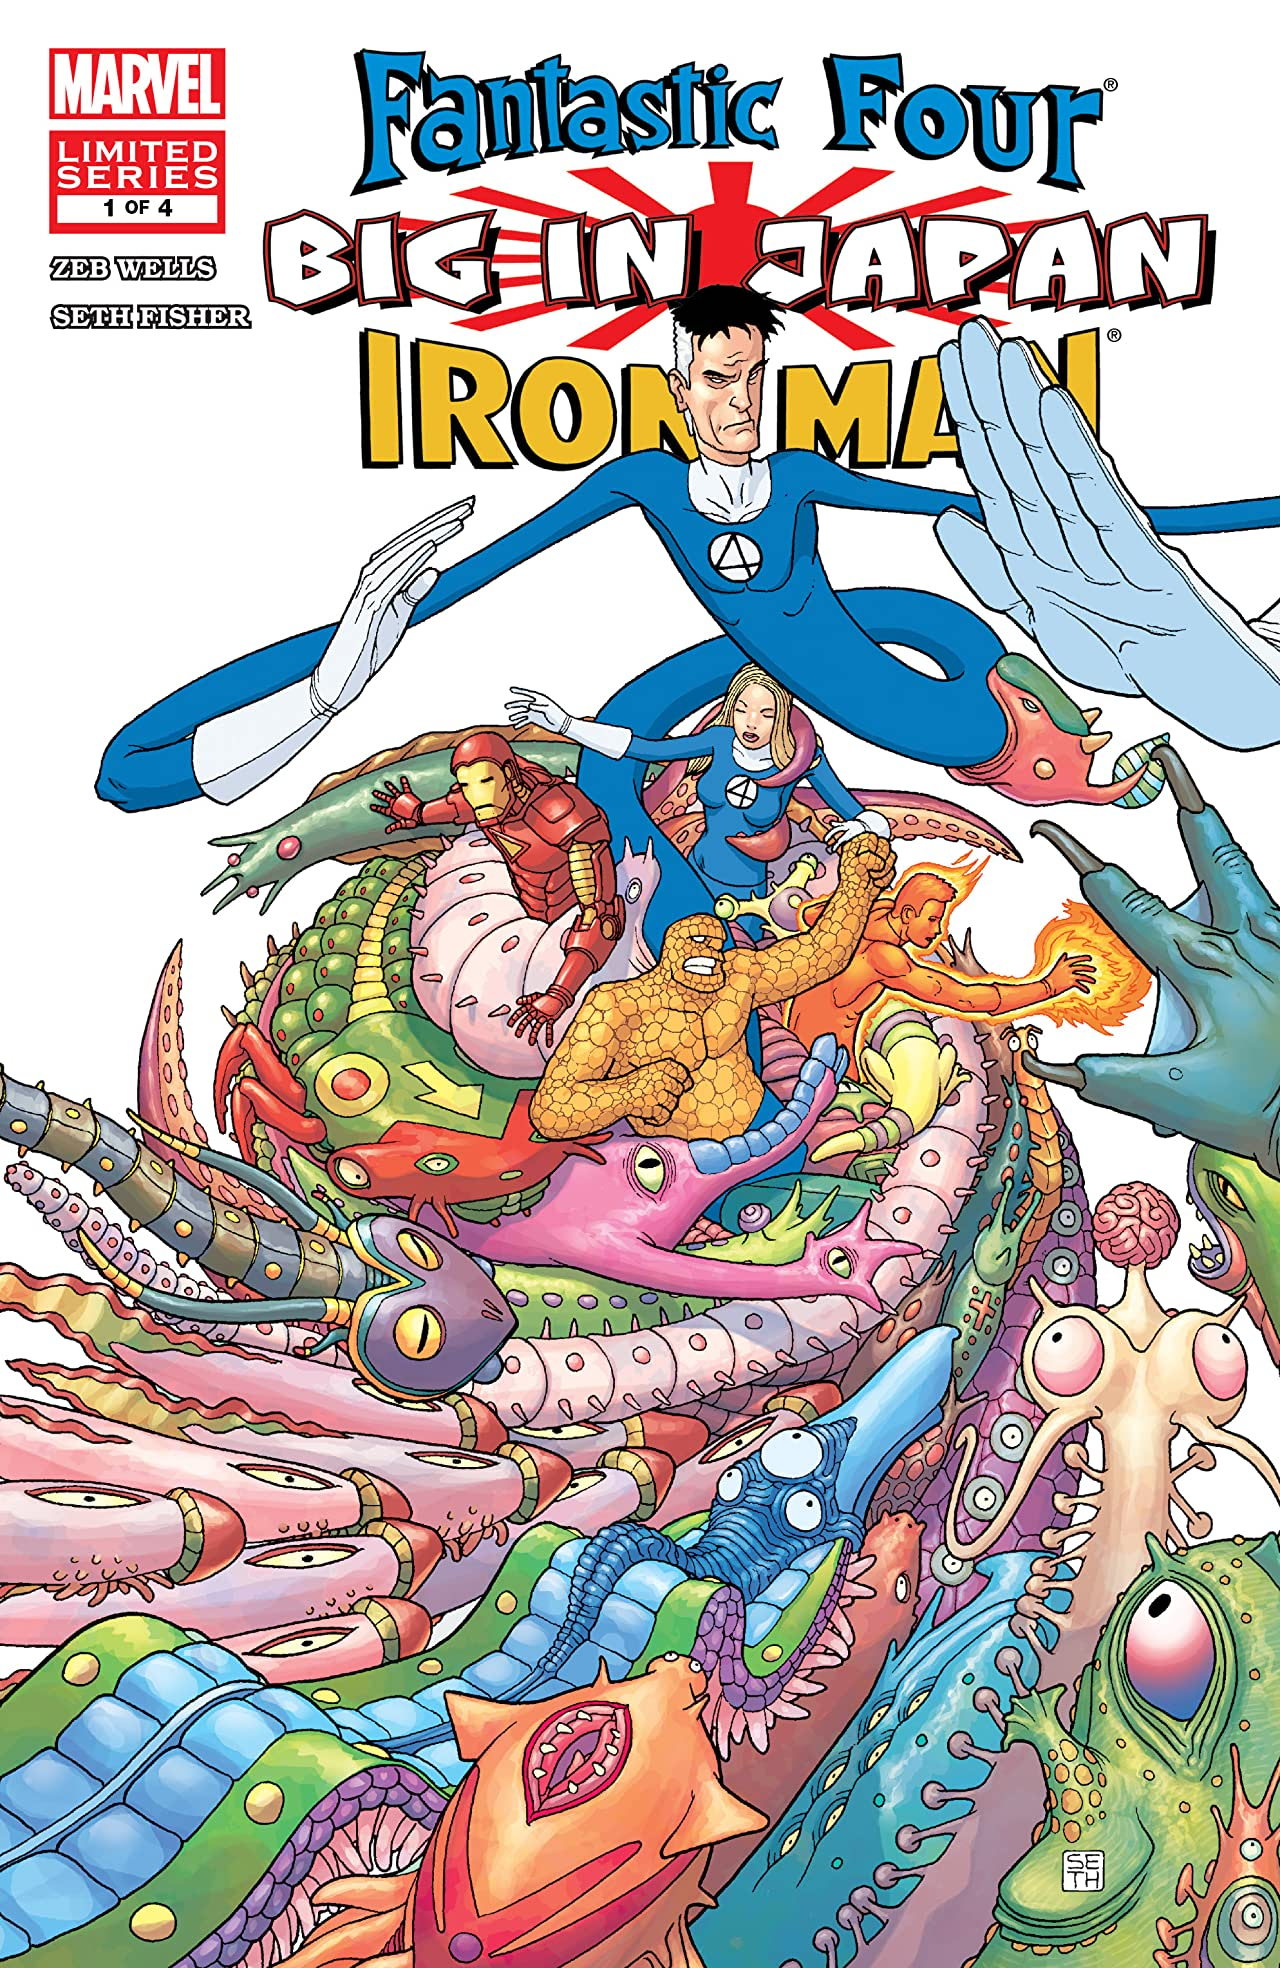 Fantastic Four/Iron Man: Big in Japan (2005-2006) #1 (of 4)